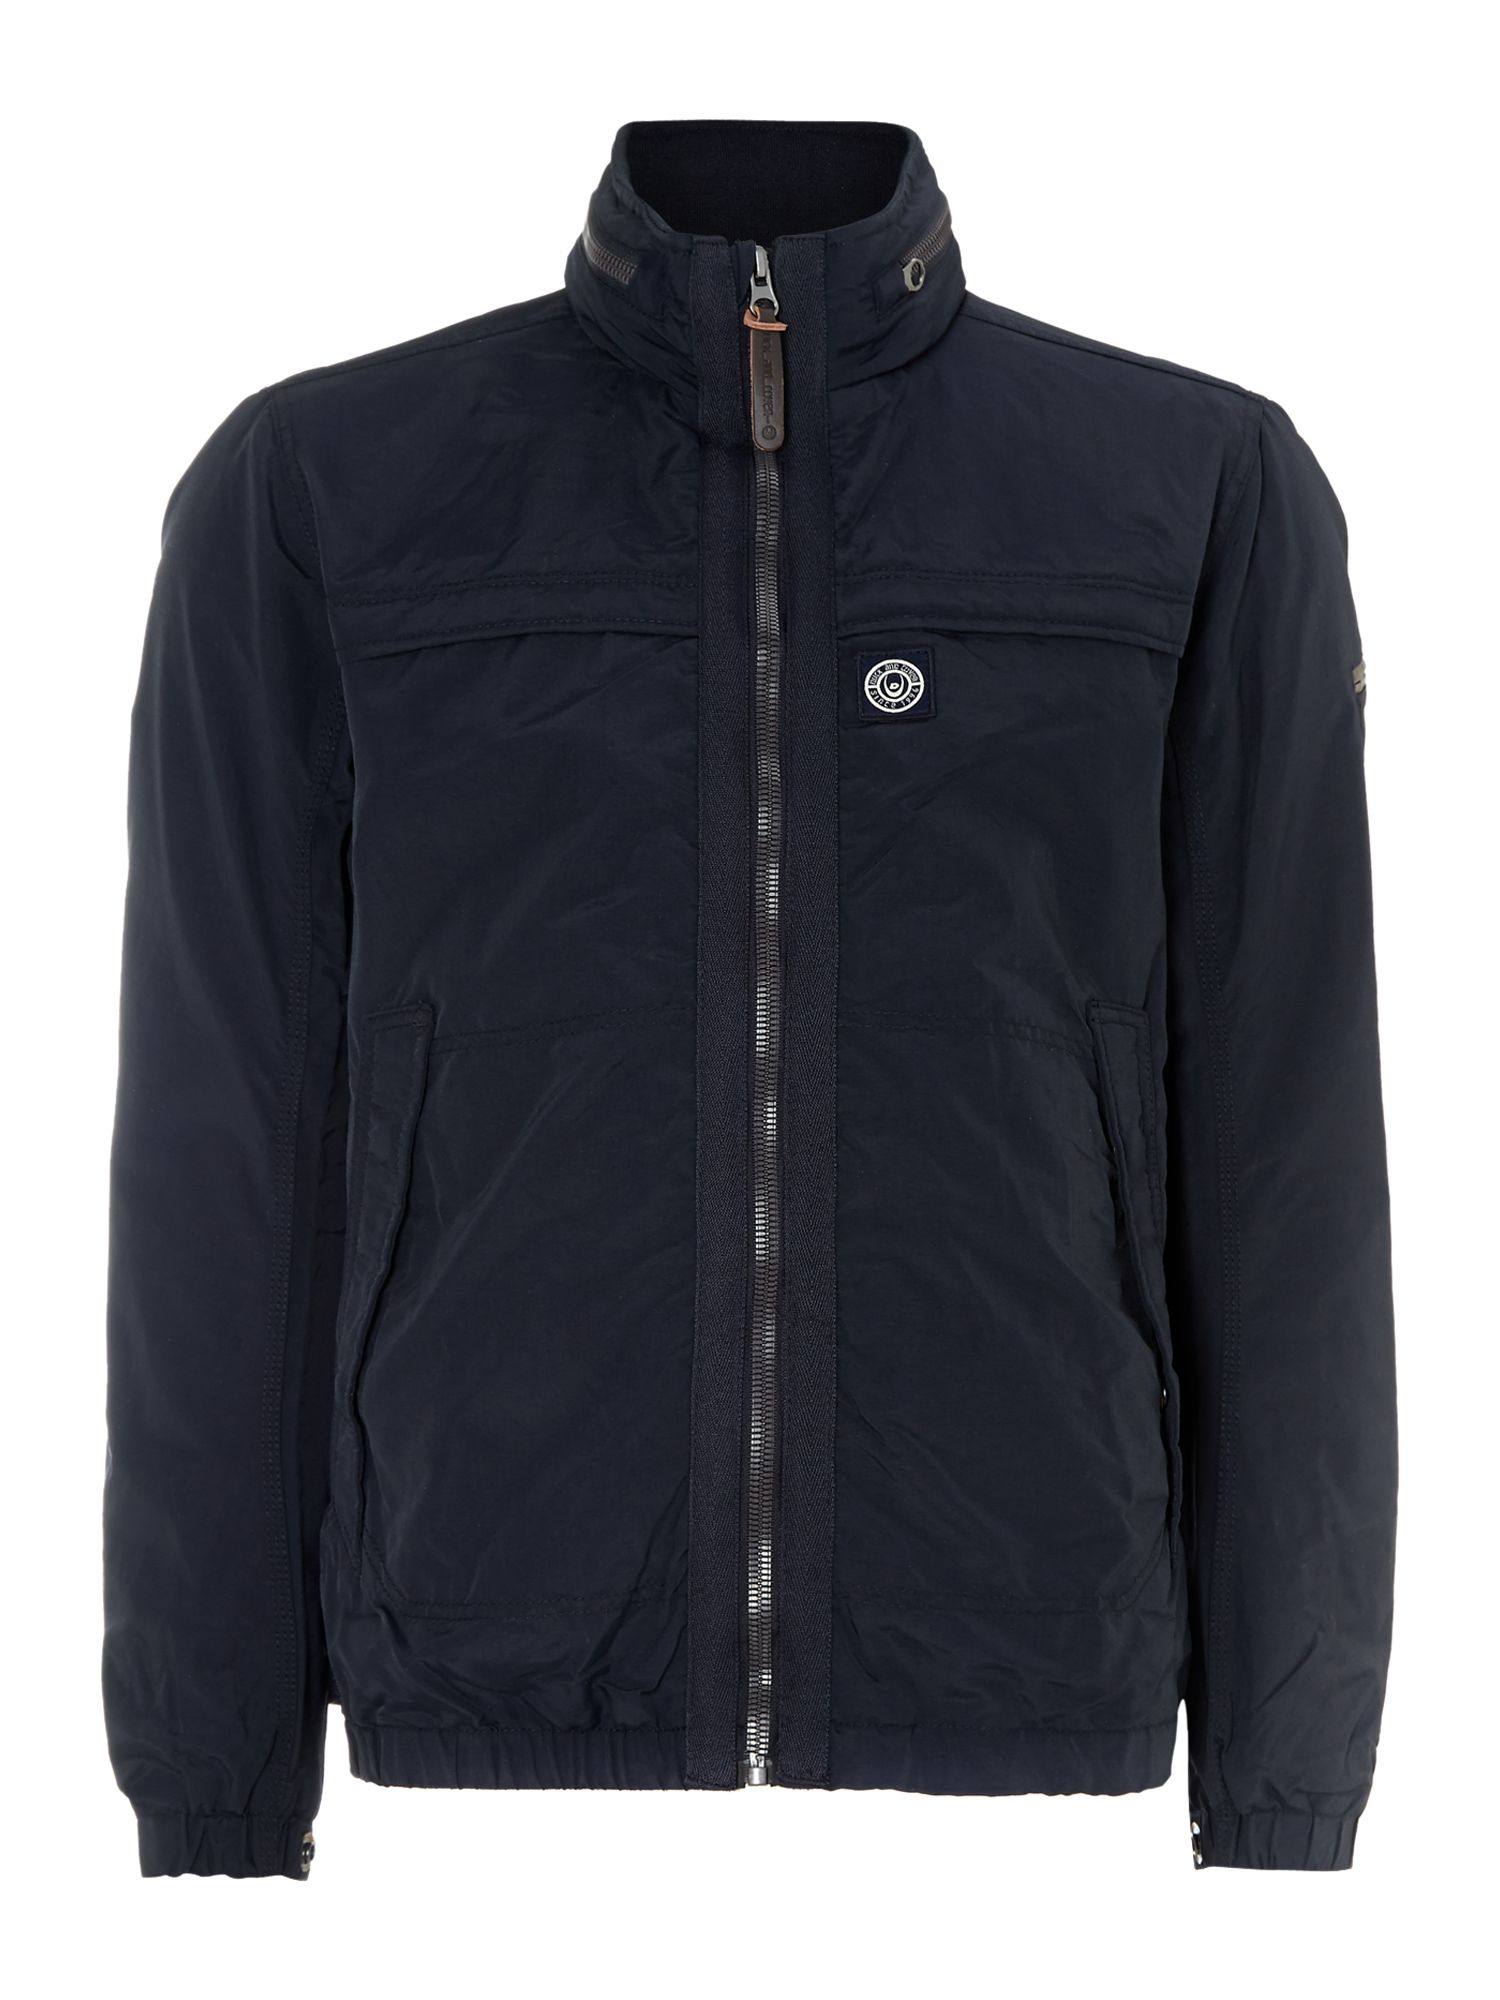 Orson-v3 hooded lightweight jacket